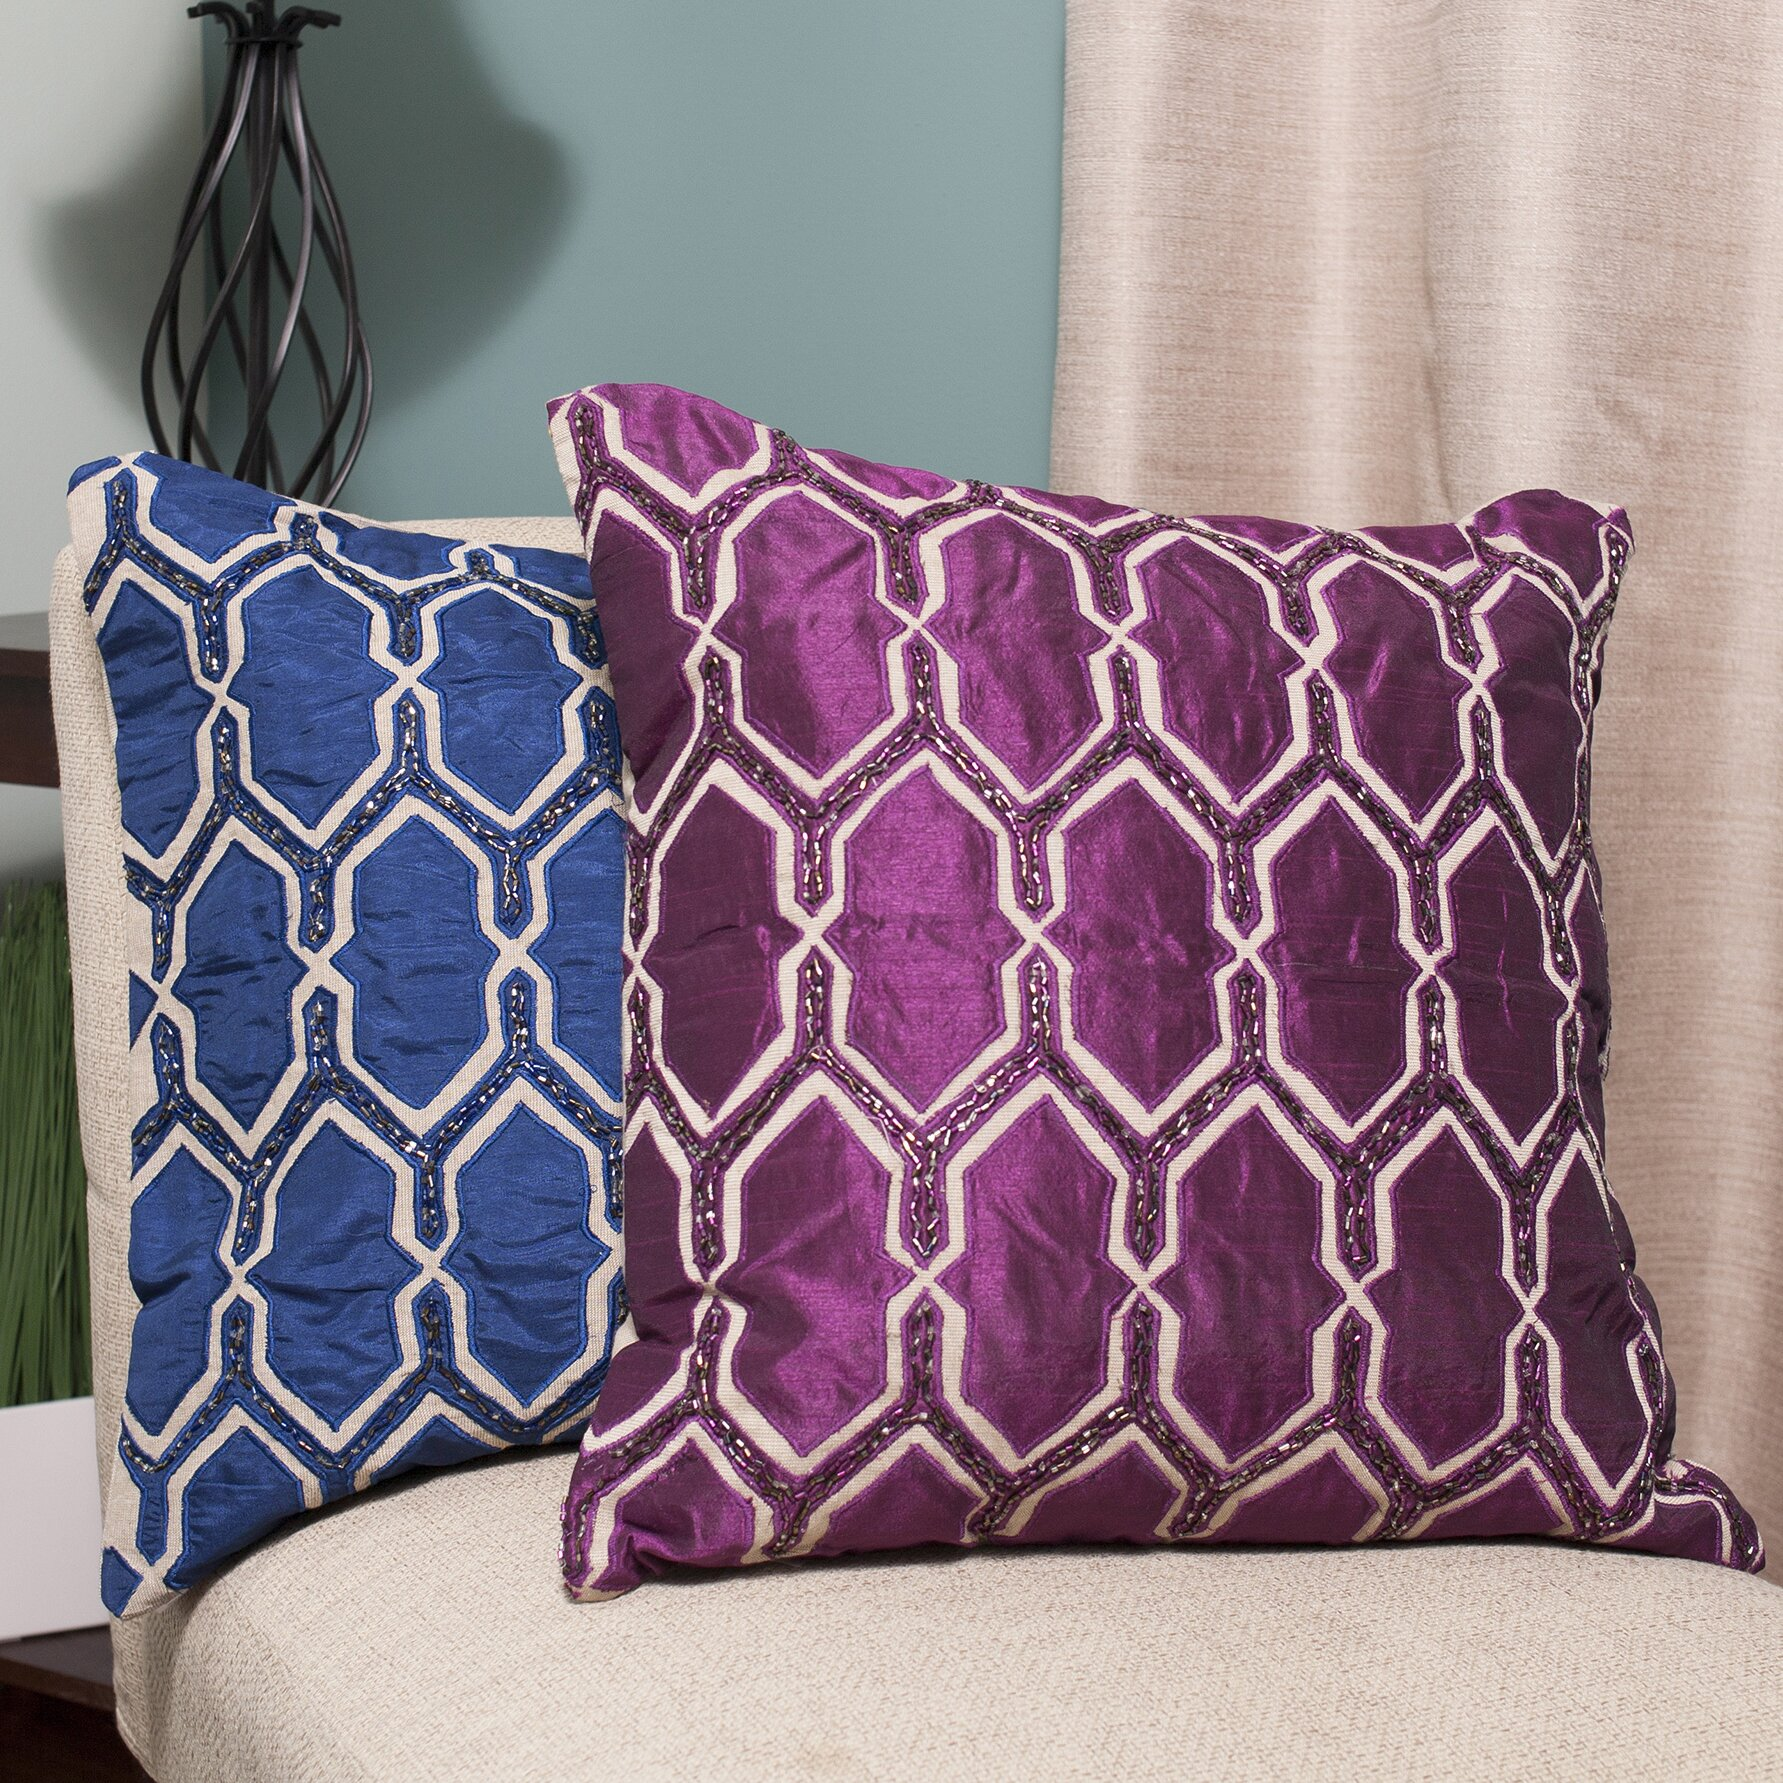 Sweet Home Collection Luxury Zippered Beaded Decorative Throw Pillow Wayfair